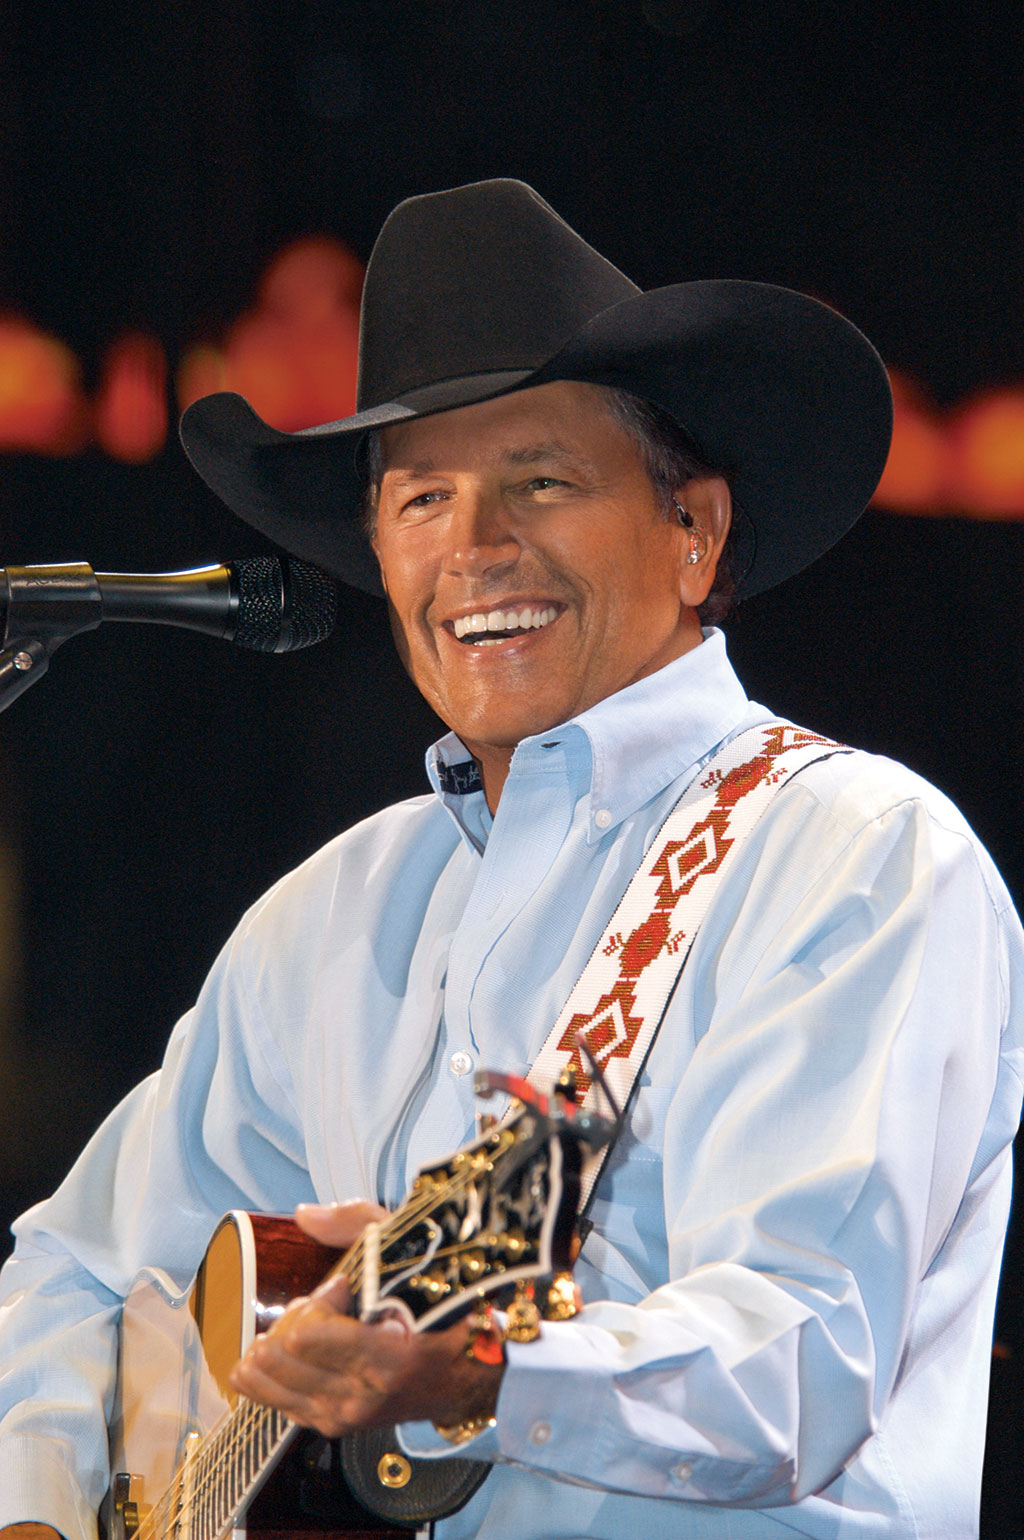 King Of Country Rules On George Strait The Cowboy Rides Away Live From Att Stadium on two rules of life